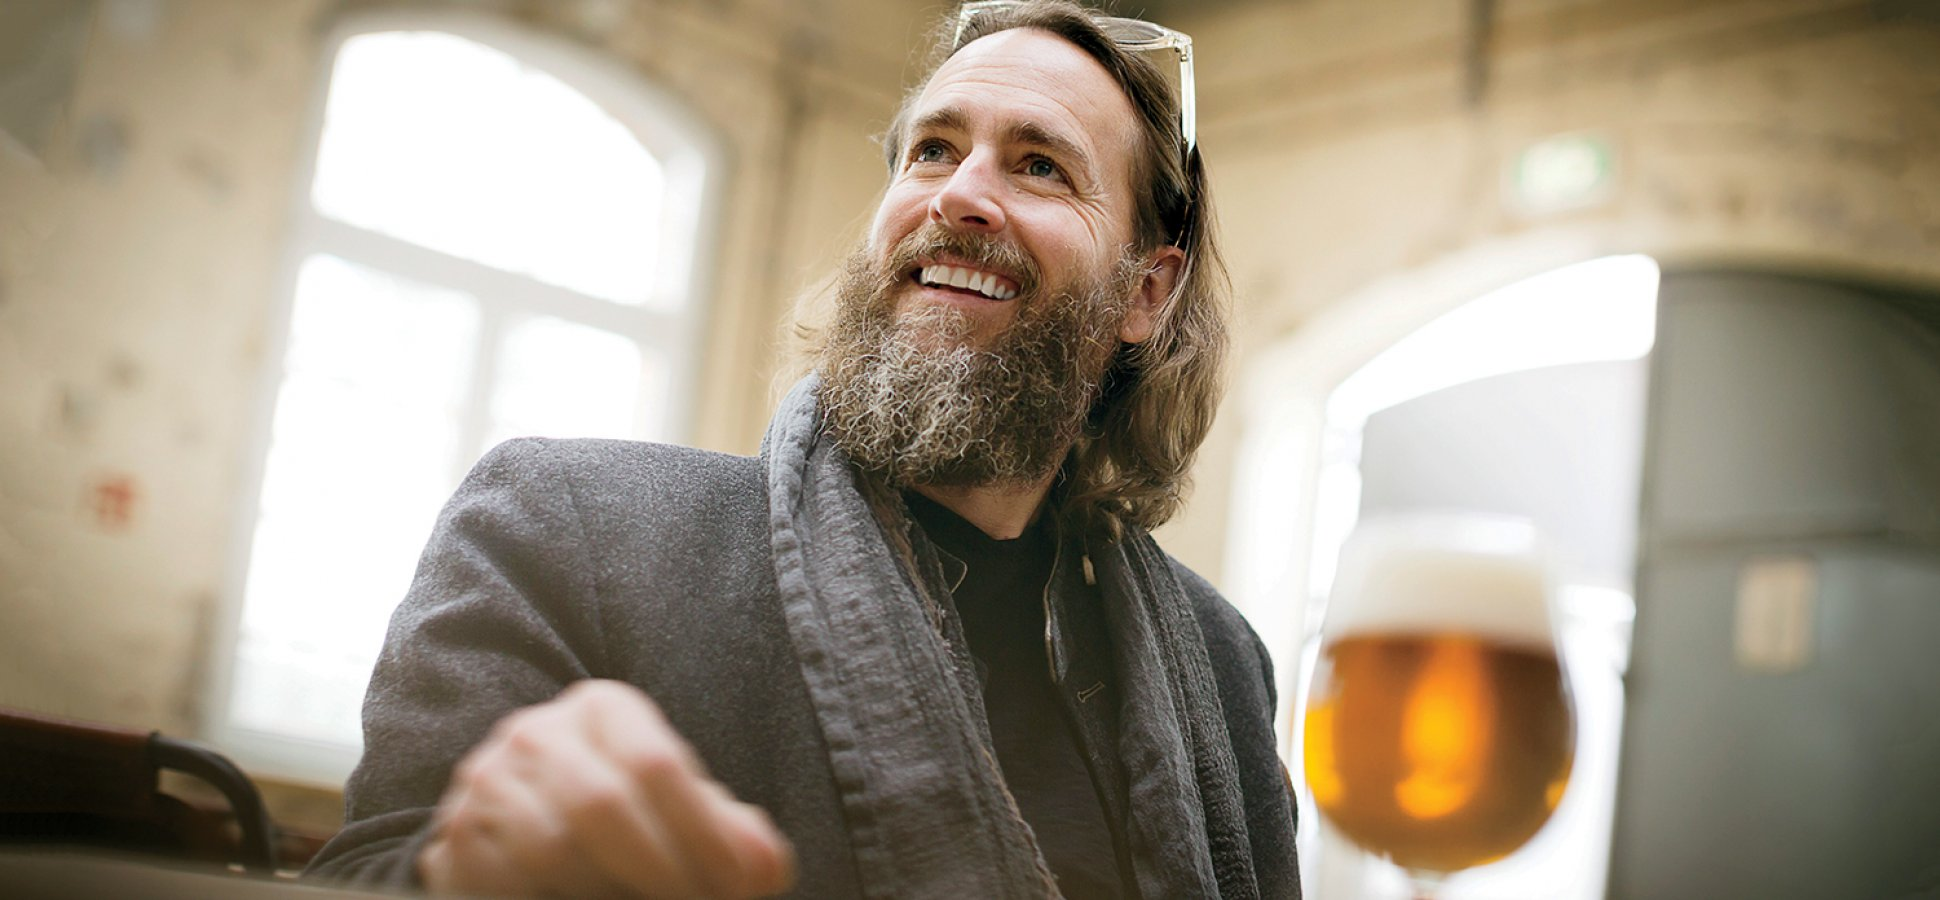 Stone Brewing's Founder Grew Up Listening to Metallica. Now He Makes Craft Beer With Them